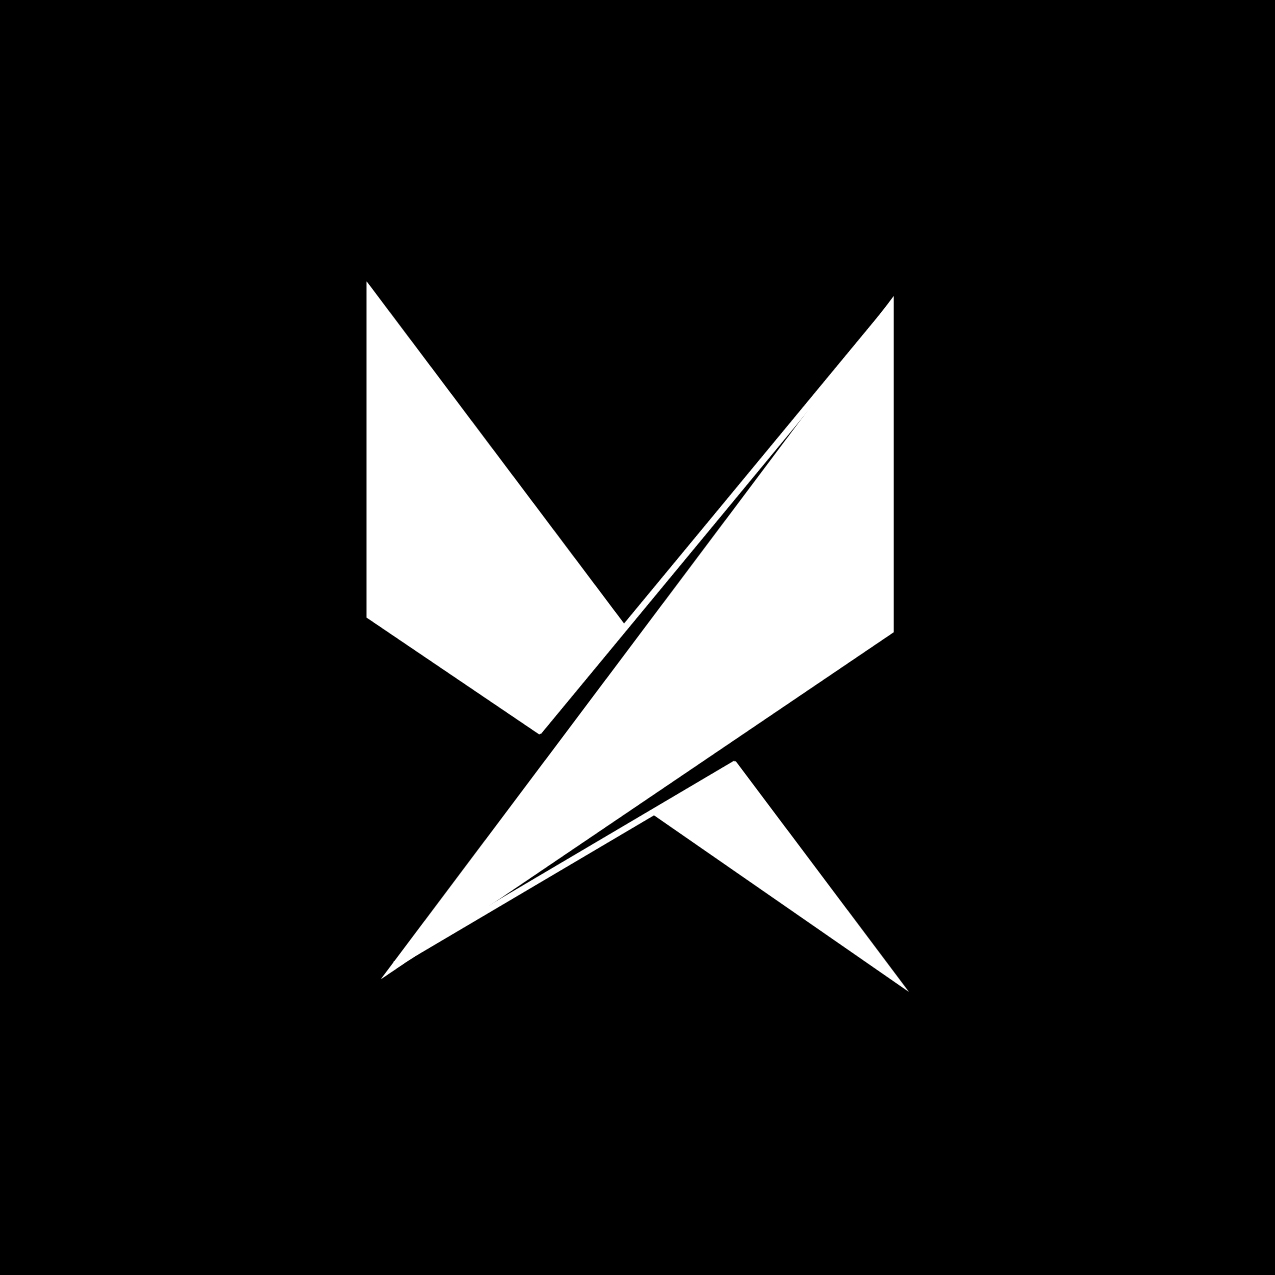 Letter X2 Design by Furia